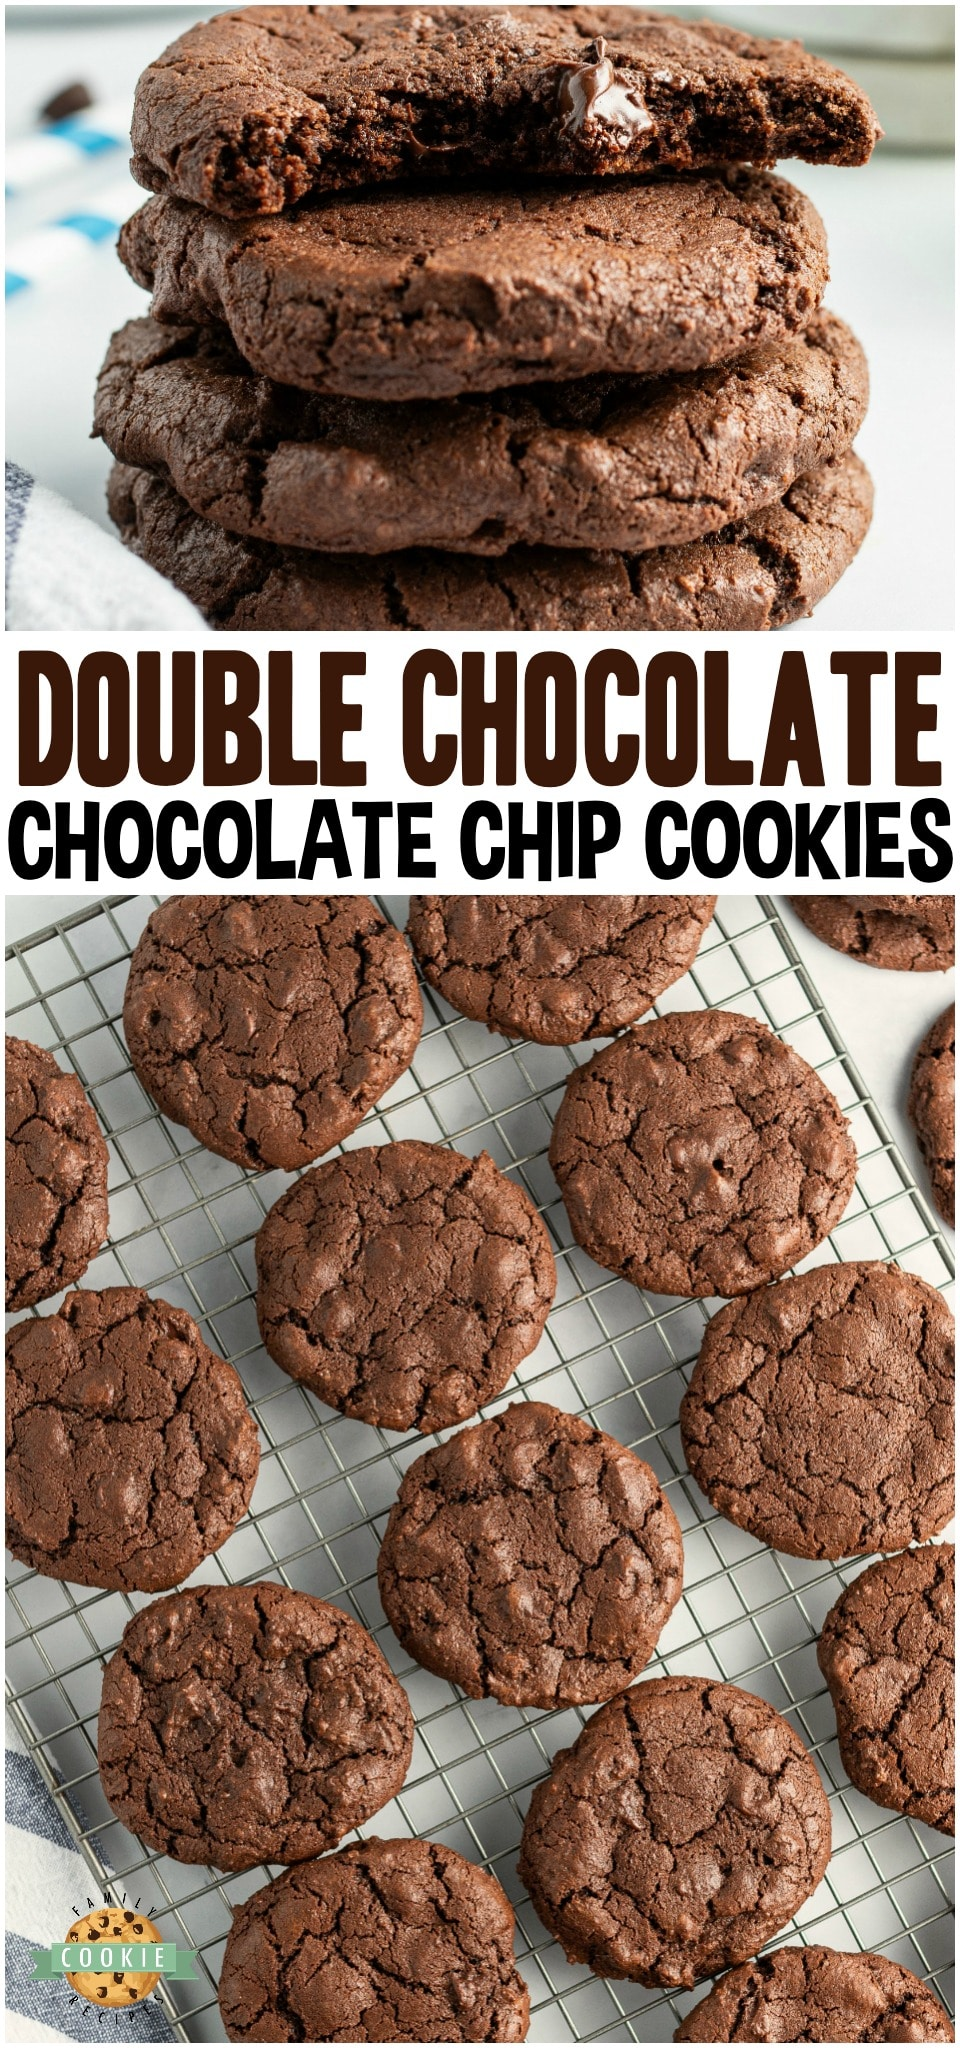 Double Chocolate Chip Cookies made with twice the chocolate for the ultimate chocolate chip cookie! Soft chewy cookies with fantastic chocolate flavor for those who LOVE #chocolate! #cookies #chocoholic #baking #dessert #deathbychocolate #recipe from FAMILY COOKIE RECIPES via @buttergirls